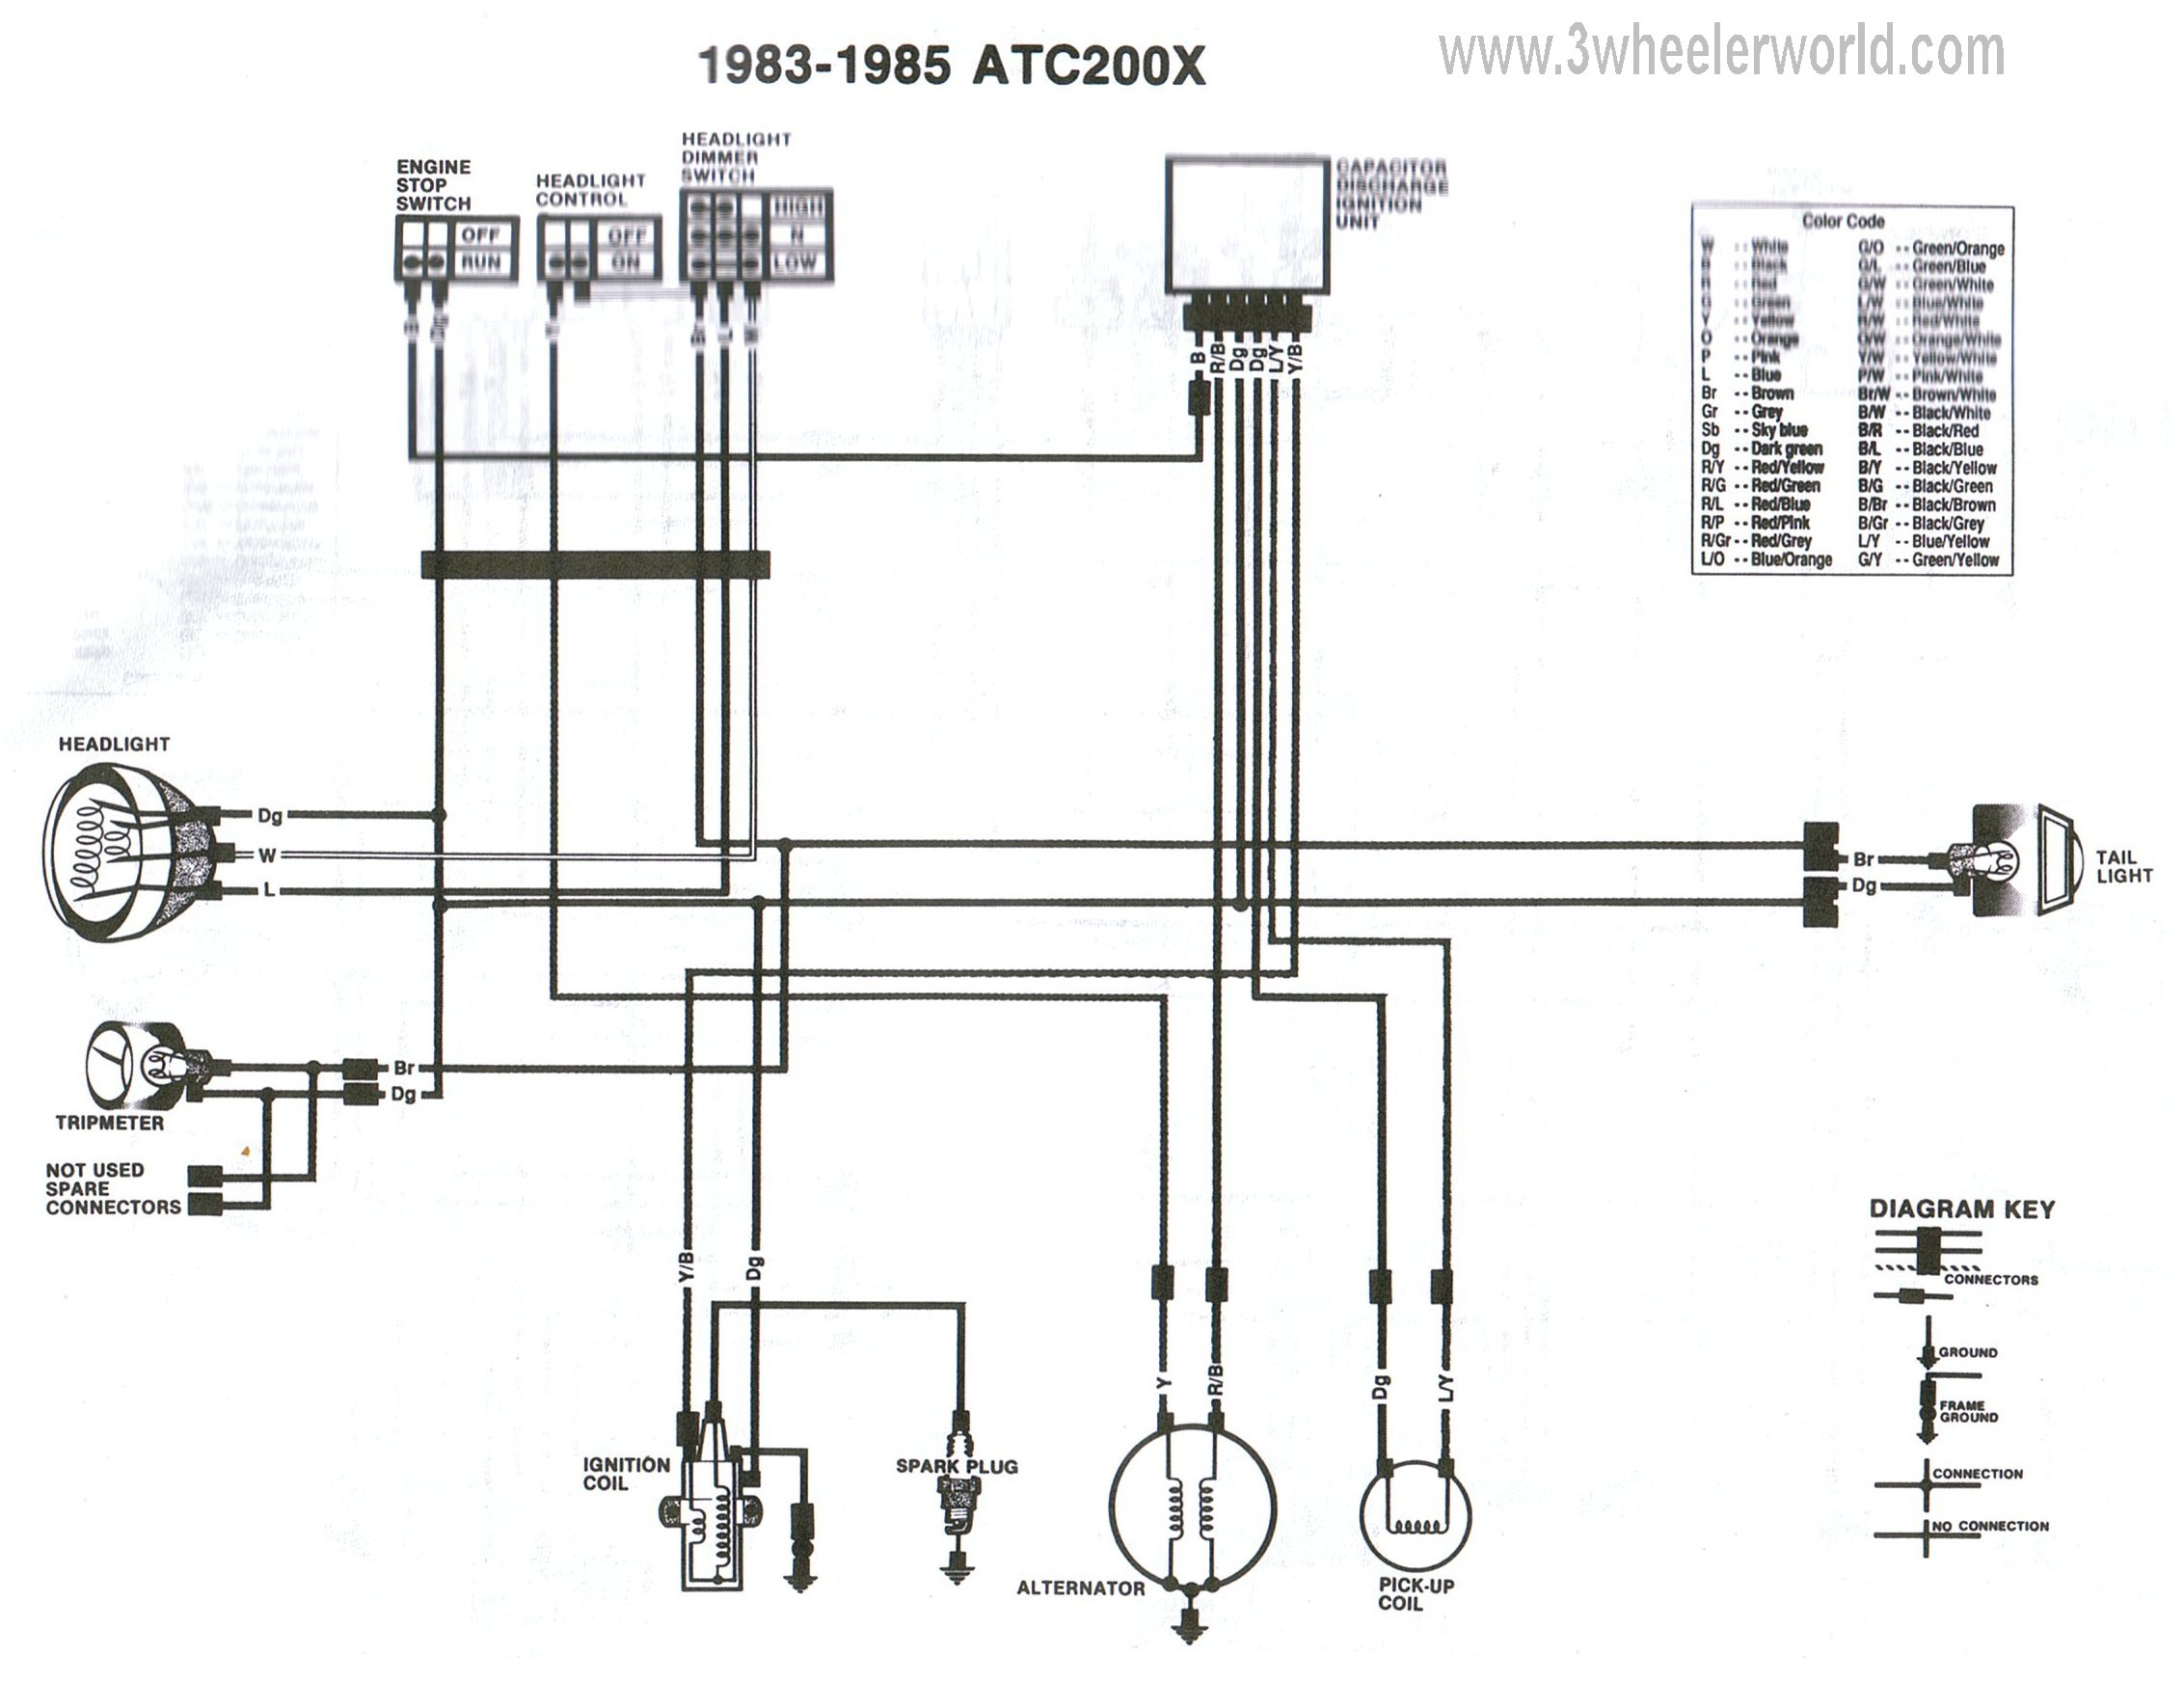 ATC200Xx83Thru85 3 wheeler world tech help honda wiring diagrams bajaj three wheeler wiring diagram pdf at crackthecode.co